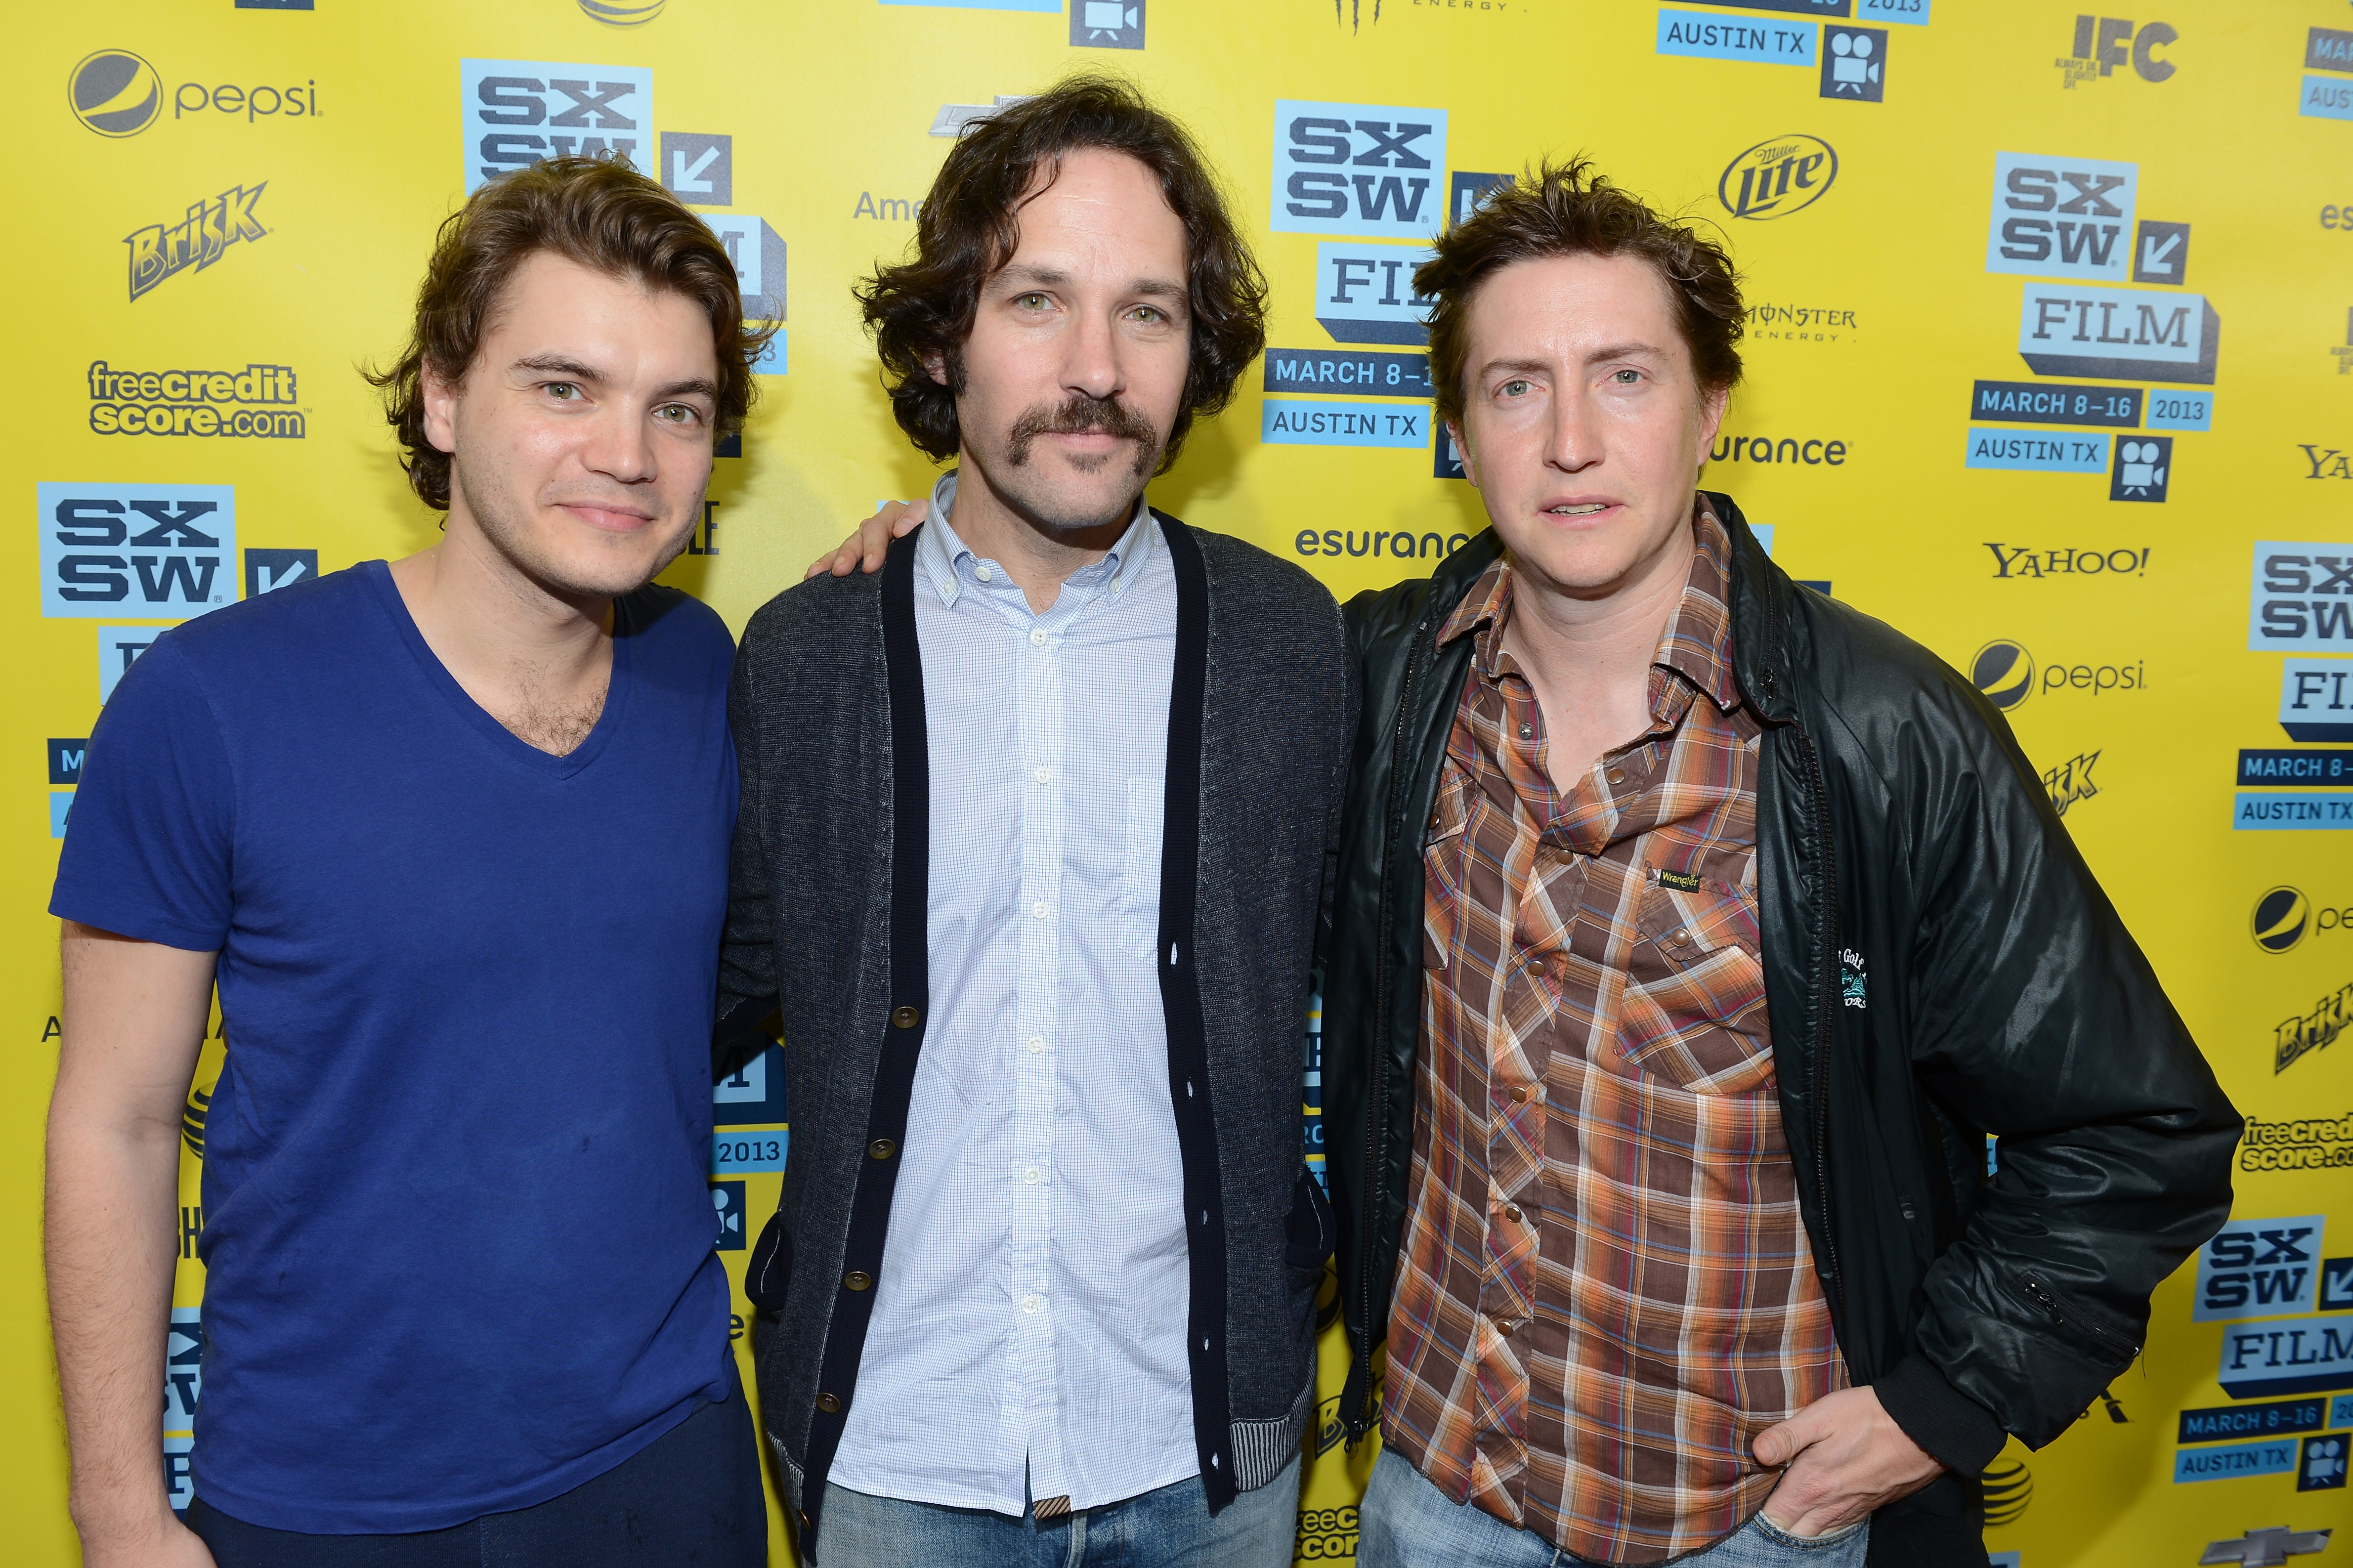 Paul Rudd hit the red carpet with Emile Hirsch and David Gordon Green for the Prince Avalanche screening at SXSW.